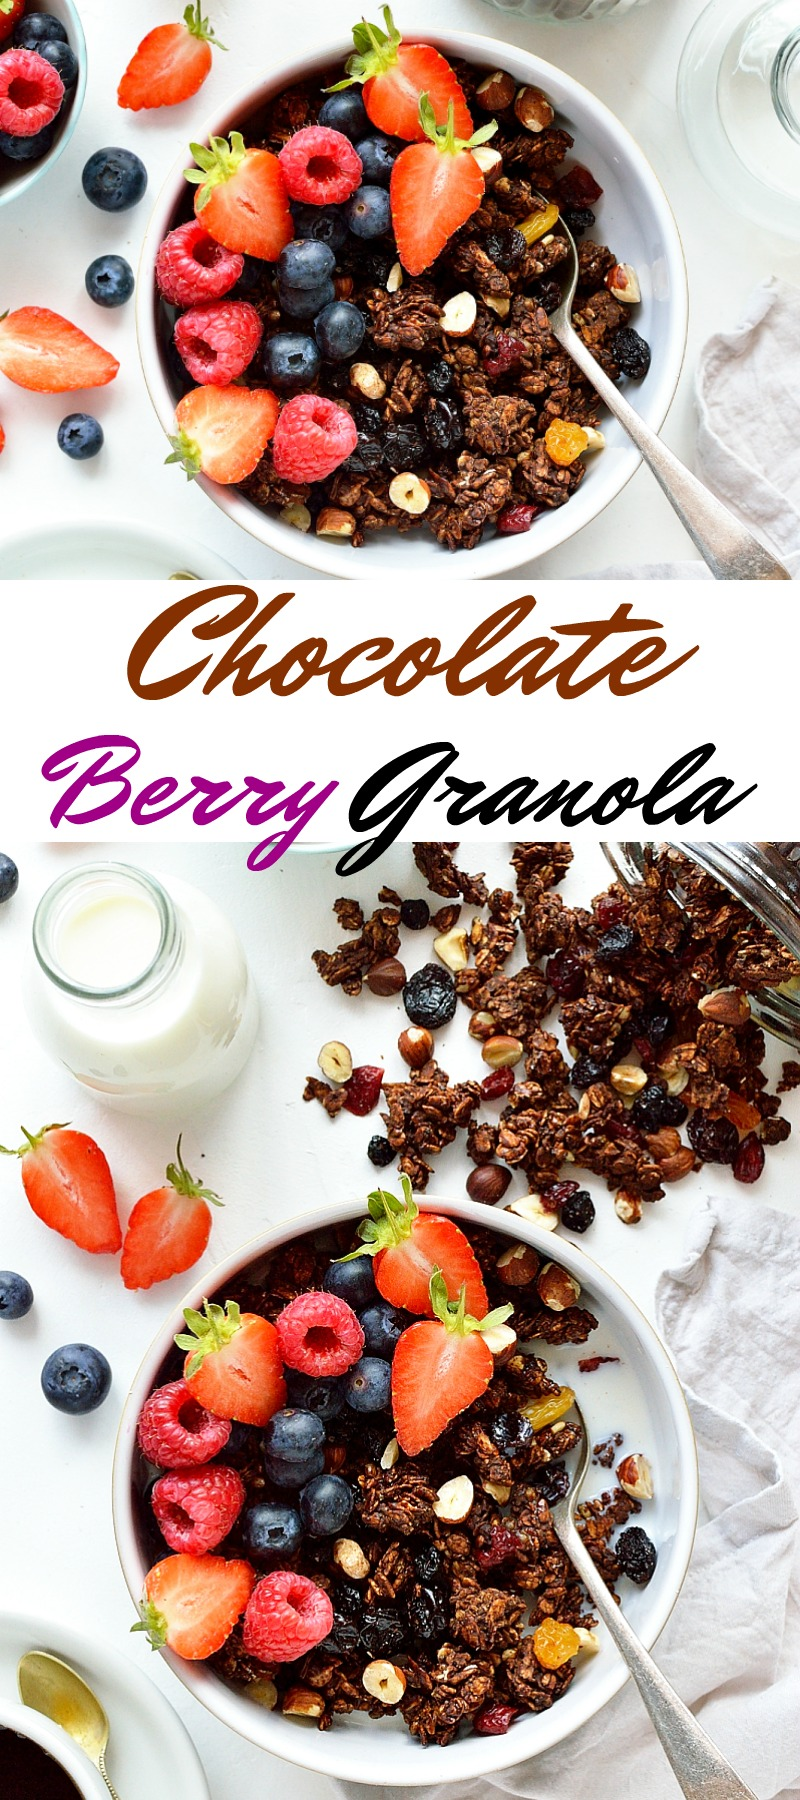 Chocolate berry granola - a healthy breakfast that almost tastes like dessert!